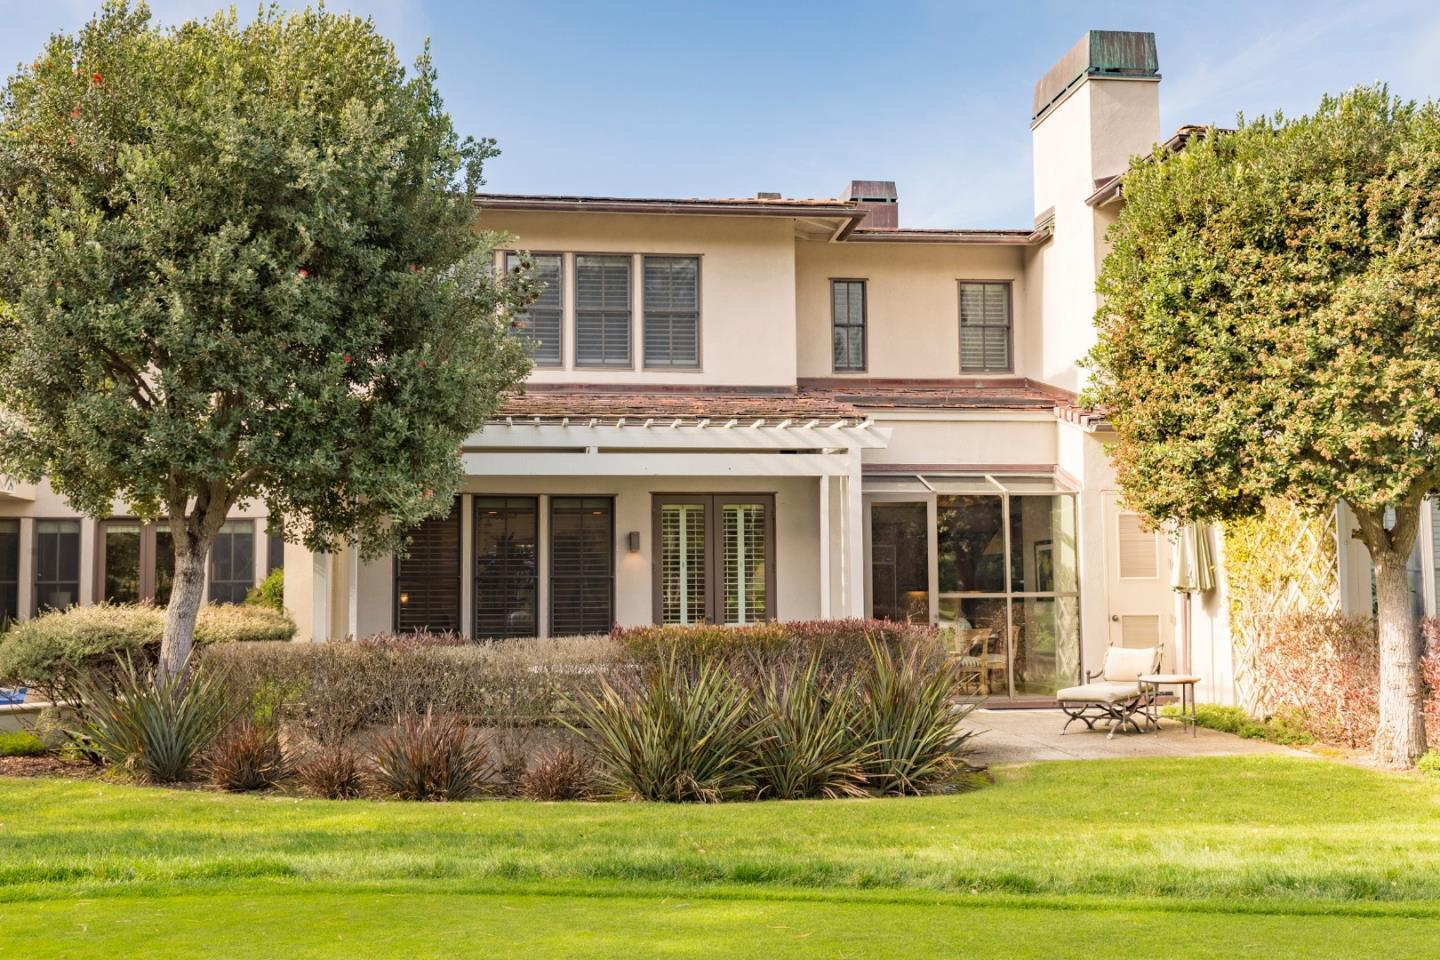 Local Real Estate: Condos for Sale — Pebble Beach, CA — Coldwell Banker